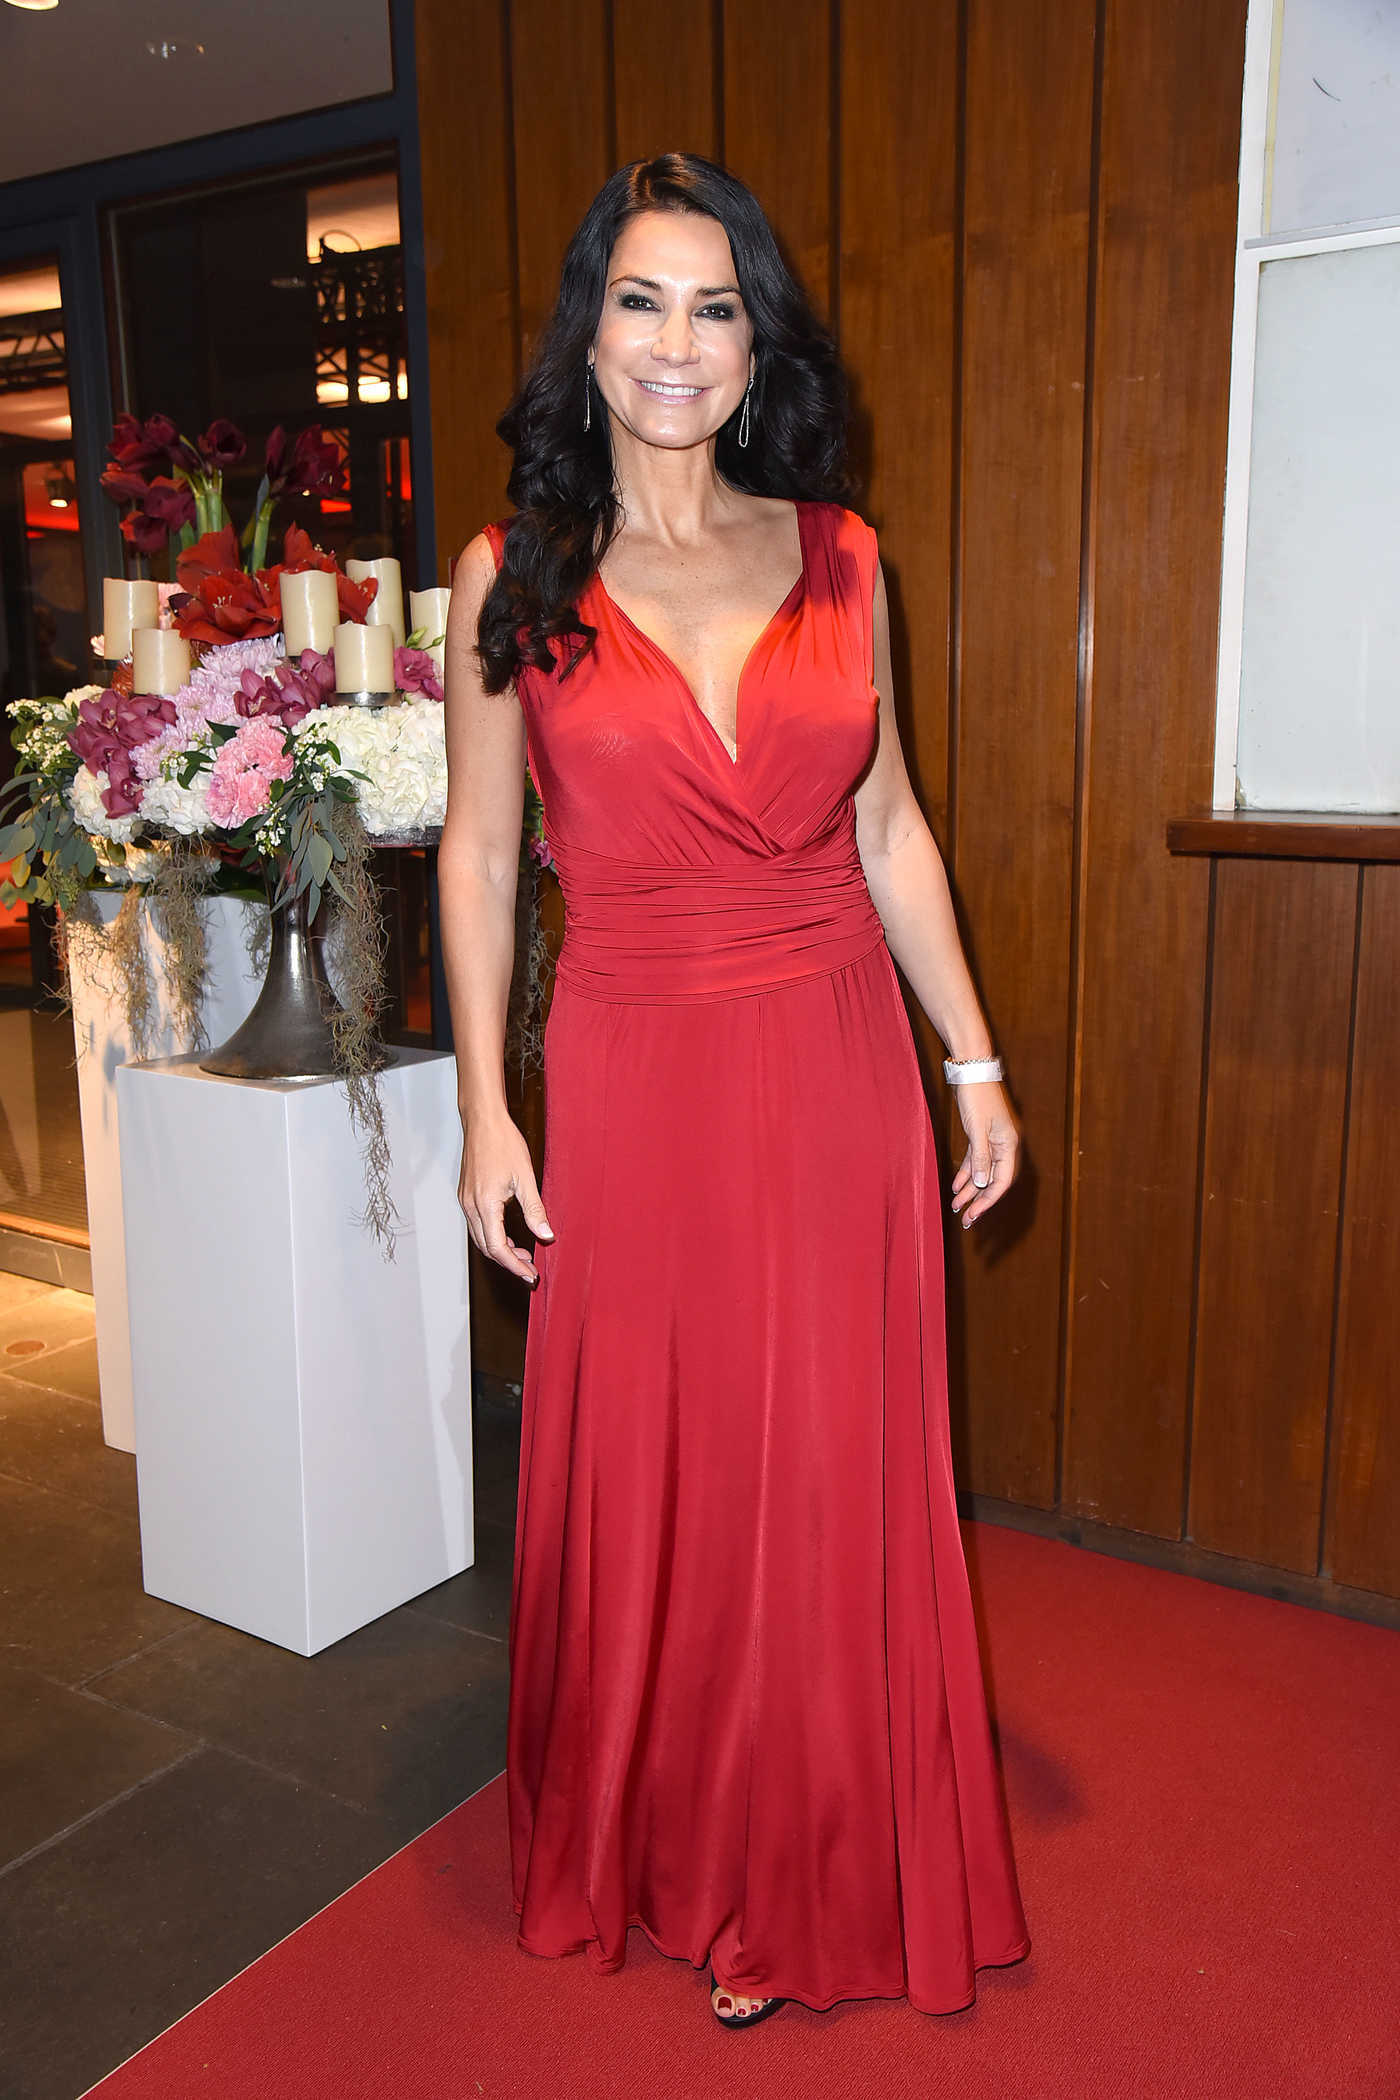 Mariella Ahrens at the 23rd Opera Gala Event in Berlin 11/05/2016